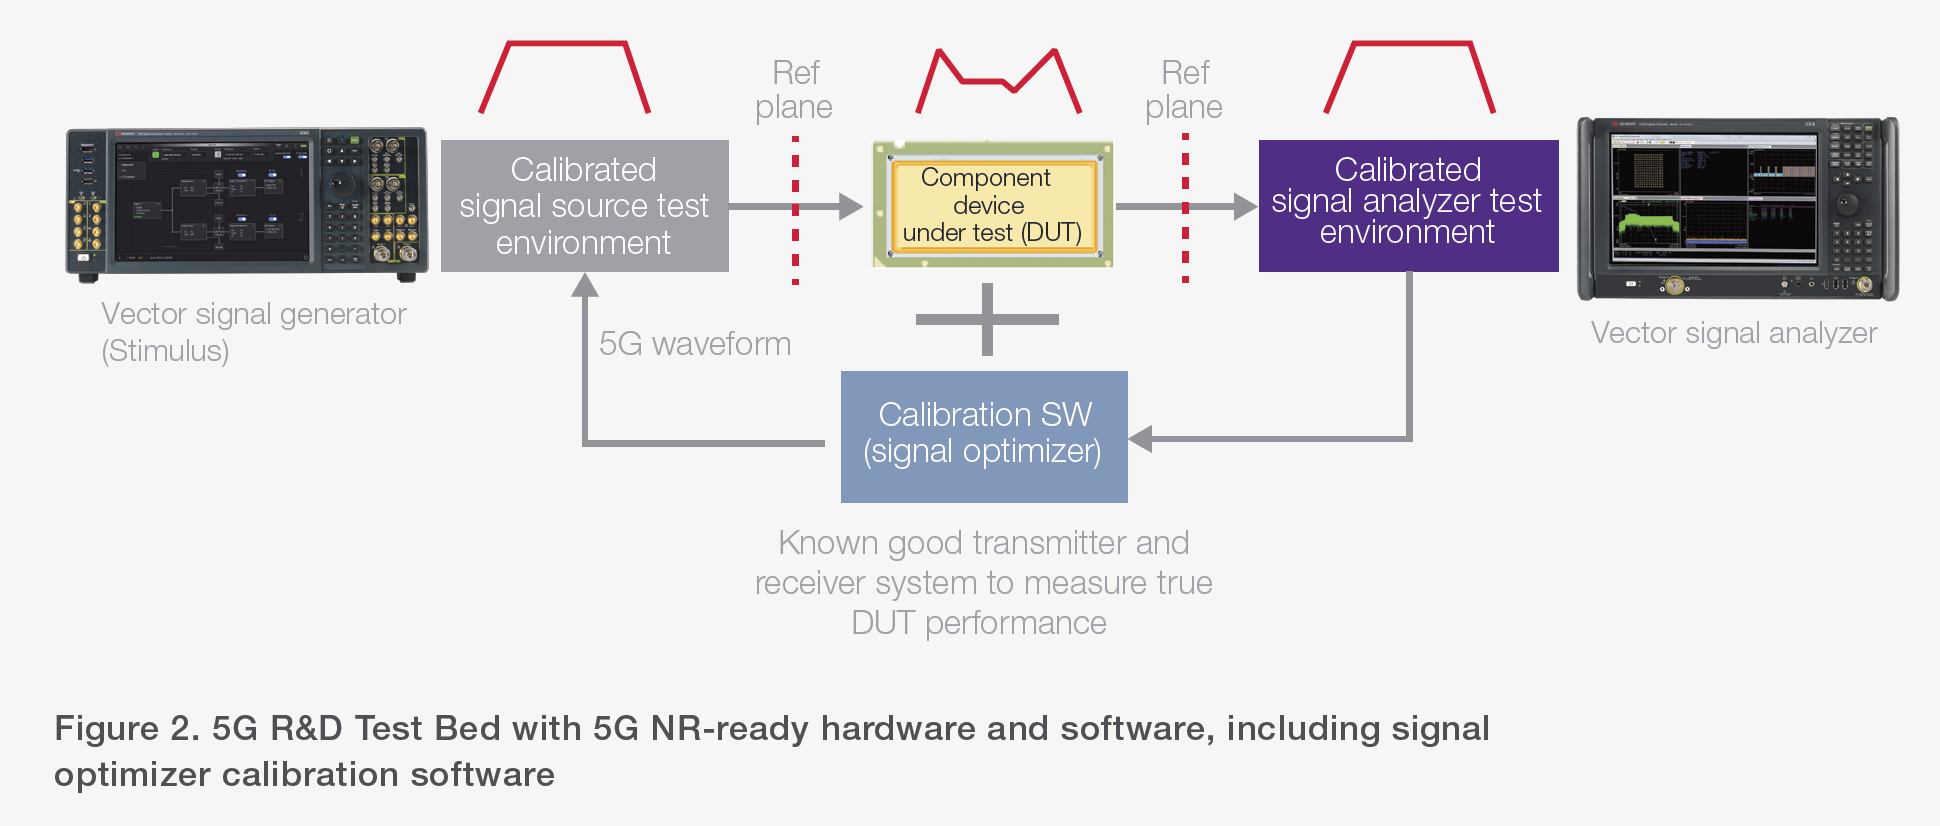 Figure 2. 5G R&D Test Bed with 5G NR-ready hardware and software, including signal optimizer calibration software